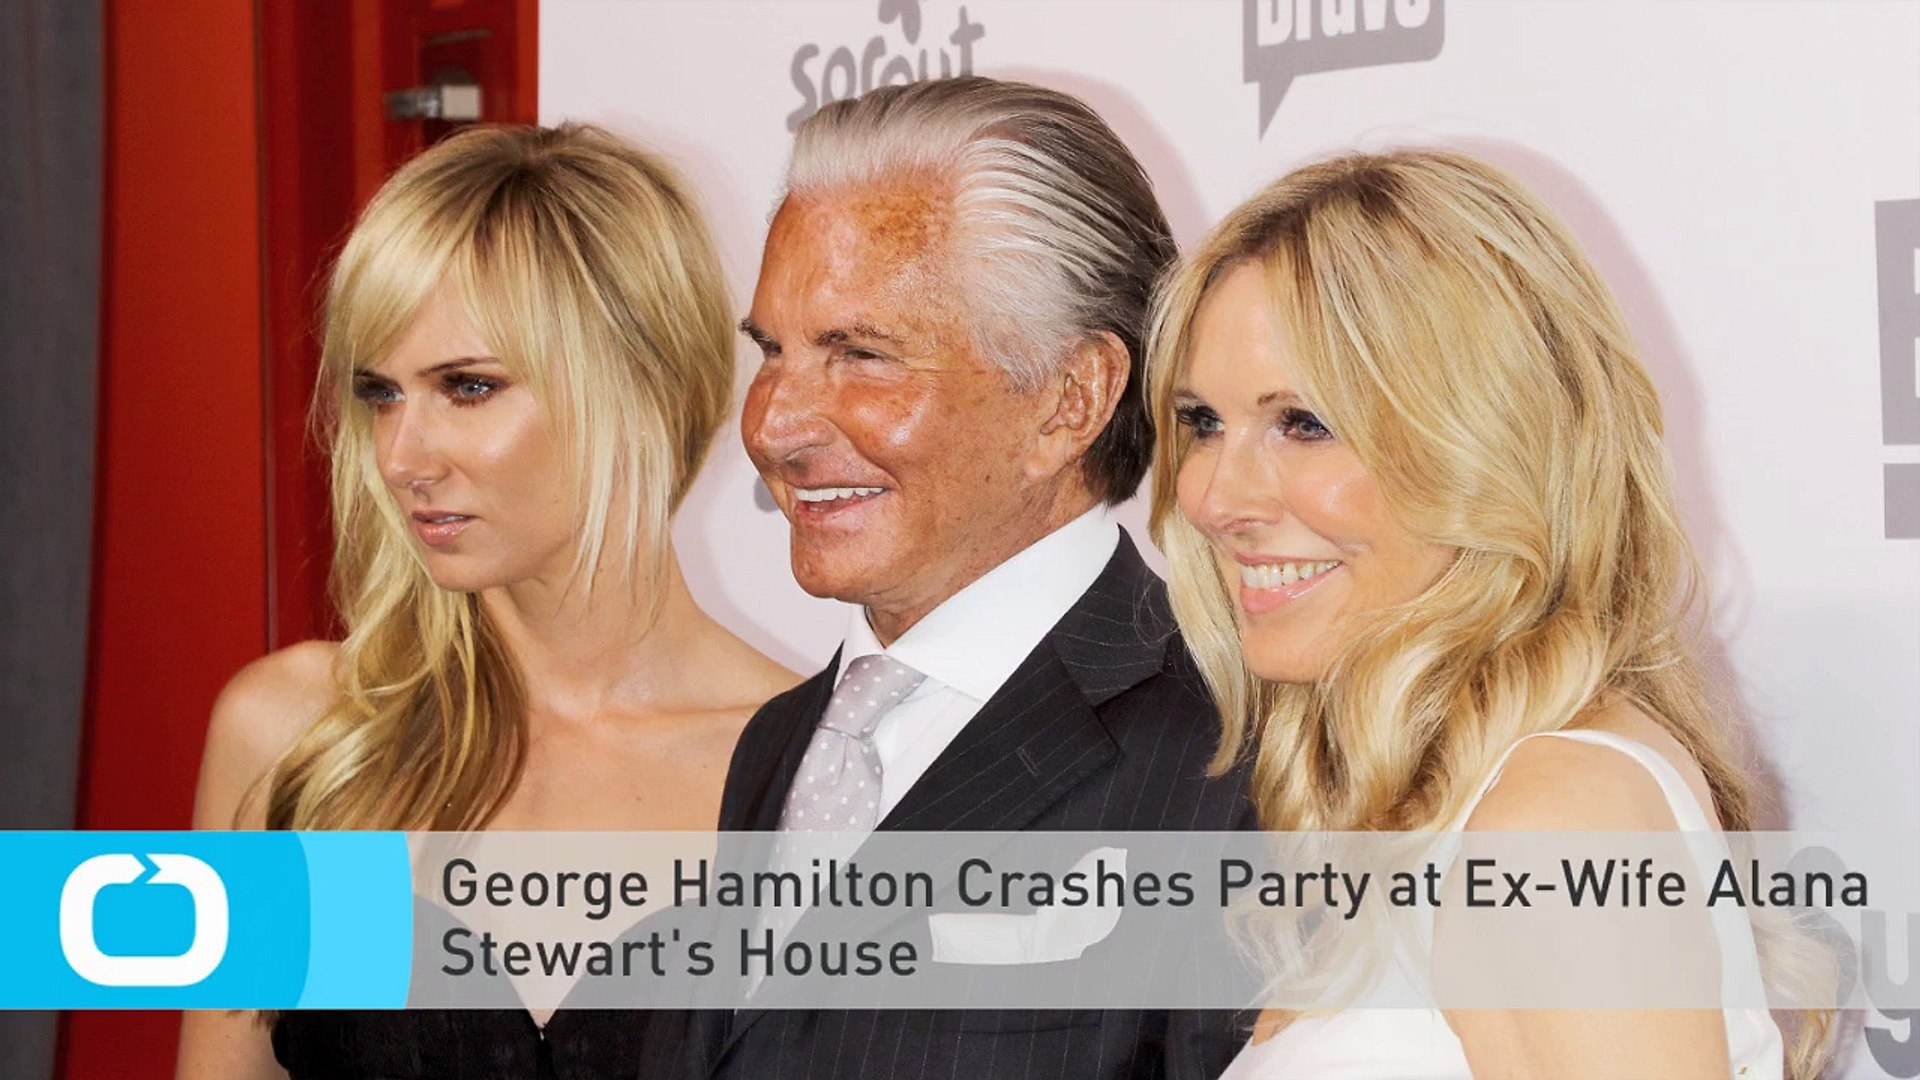 George Hamilton Crashes Party at Ex-Wife Alana Stewart's House